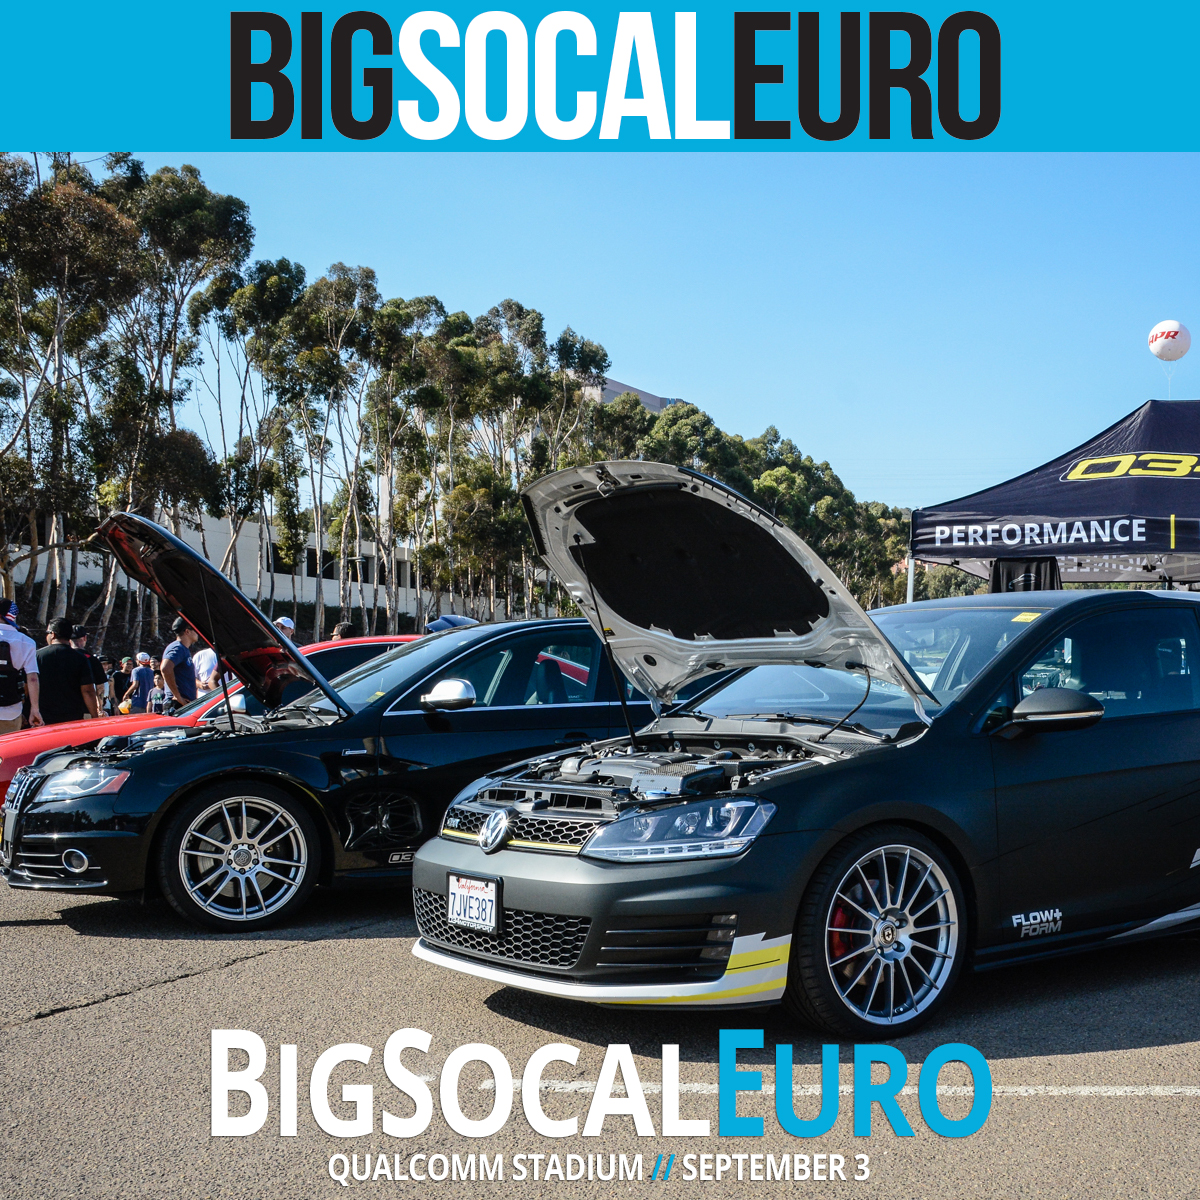 Big SoCal Euro 2017 in San Diego